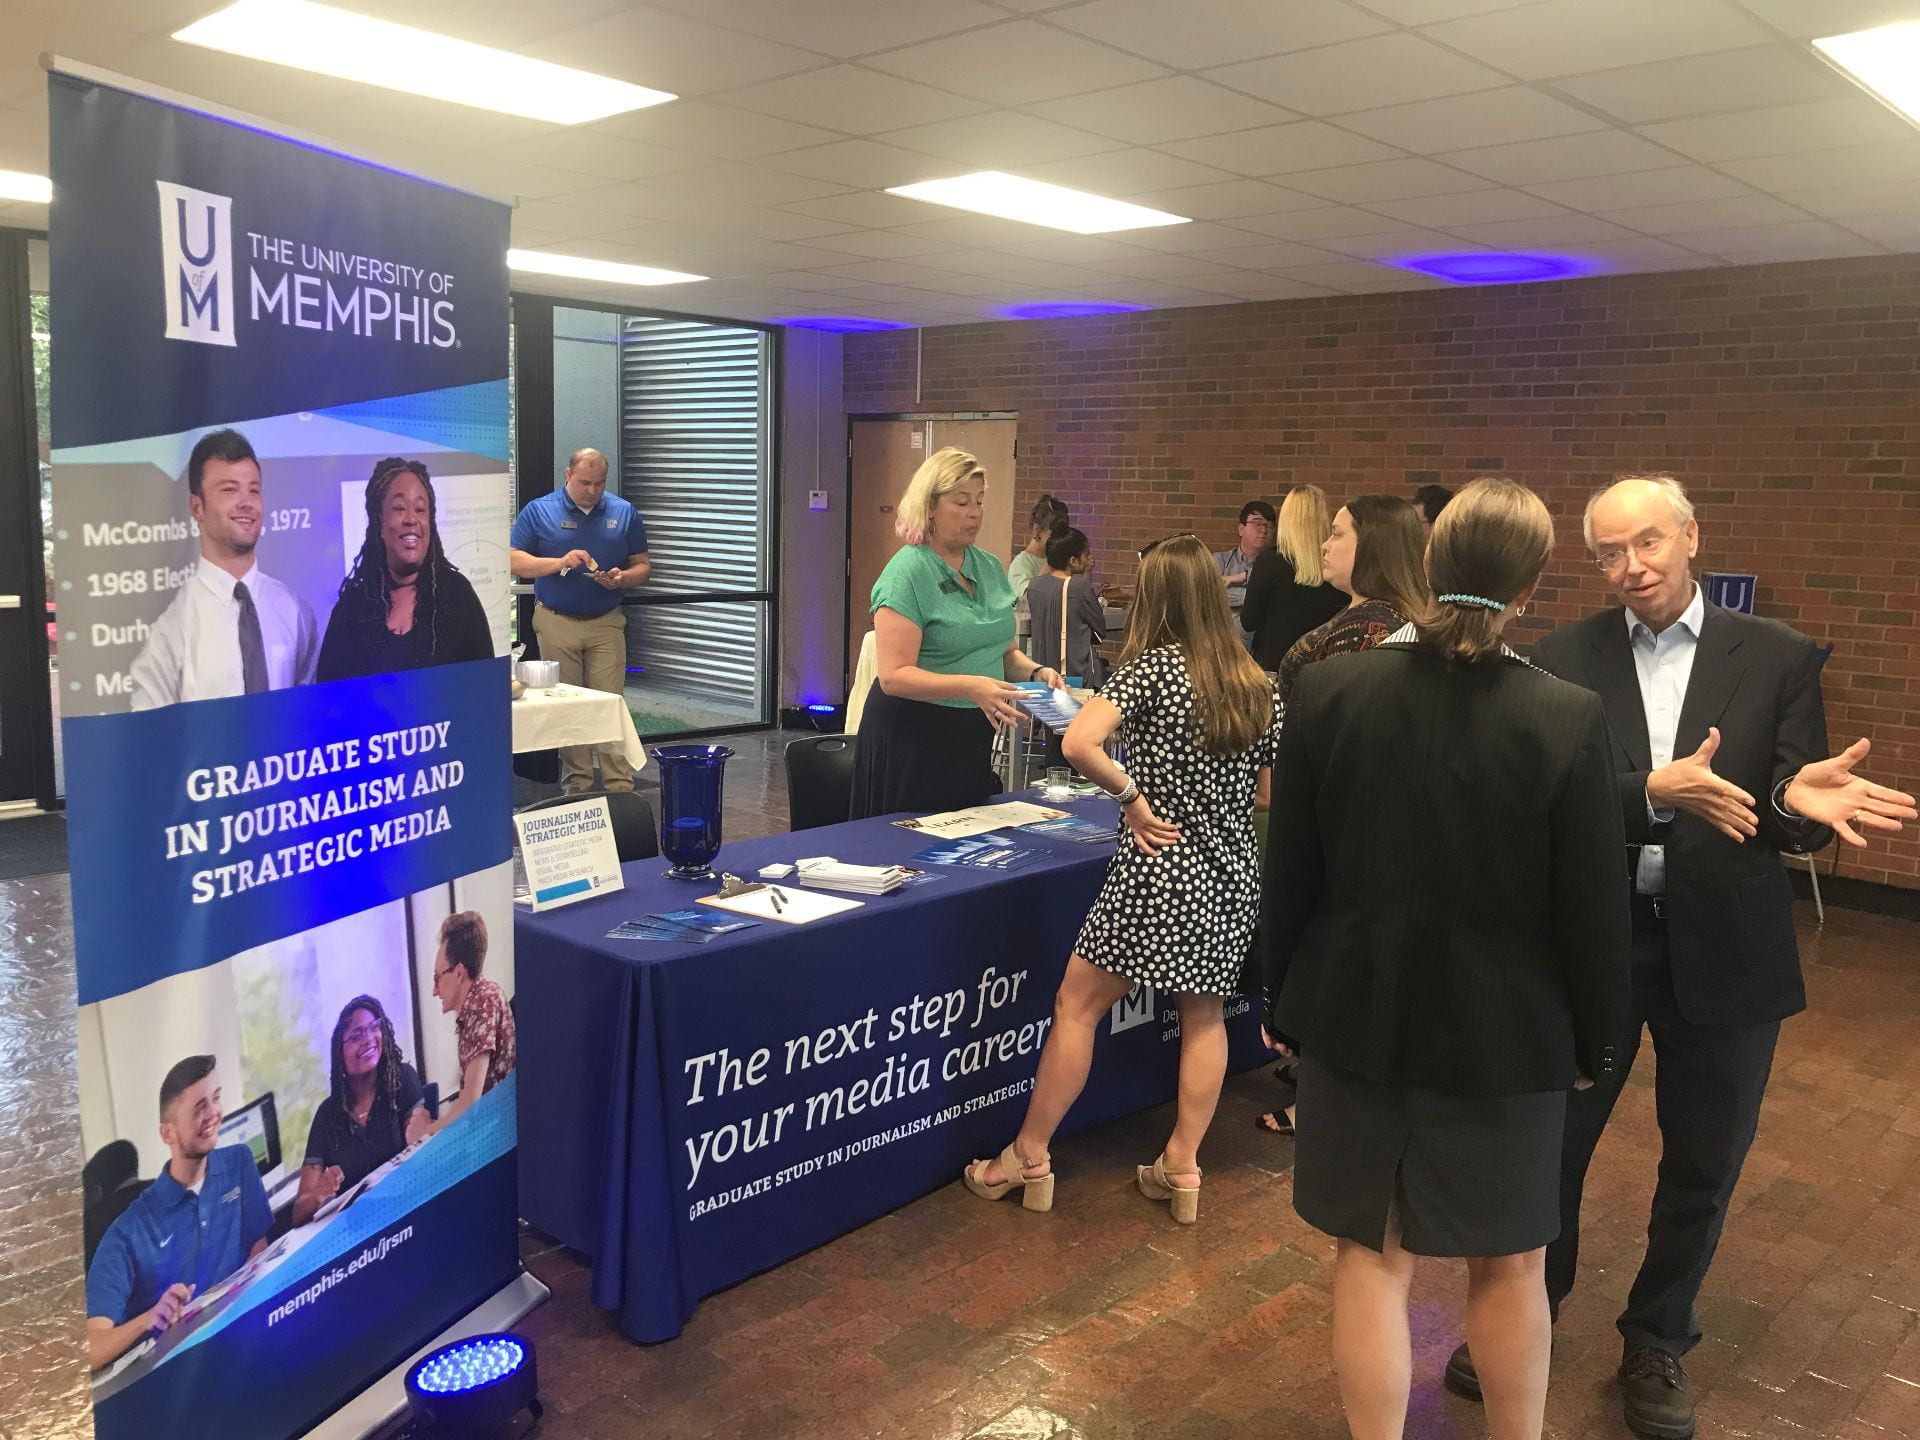 David Arant, chair of Journalism and Strategic Media, discusses graduate programs with UofM Graduate School Dean Robin Poston at an informational open house on July 23 in the Meeman Journalism Building.